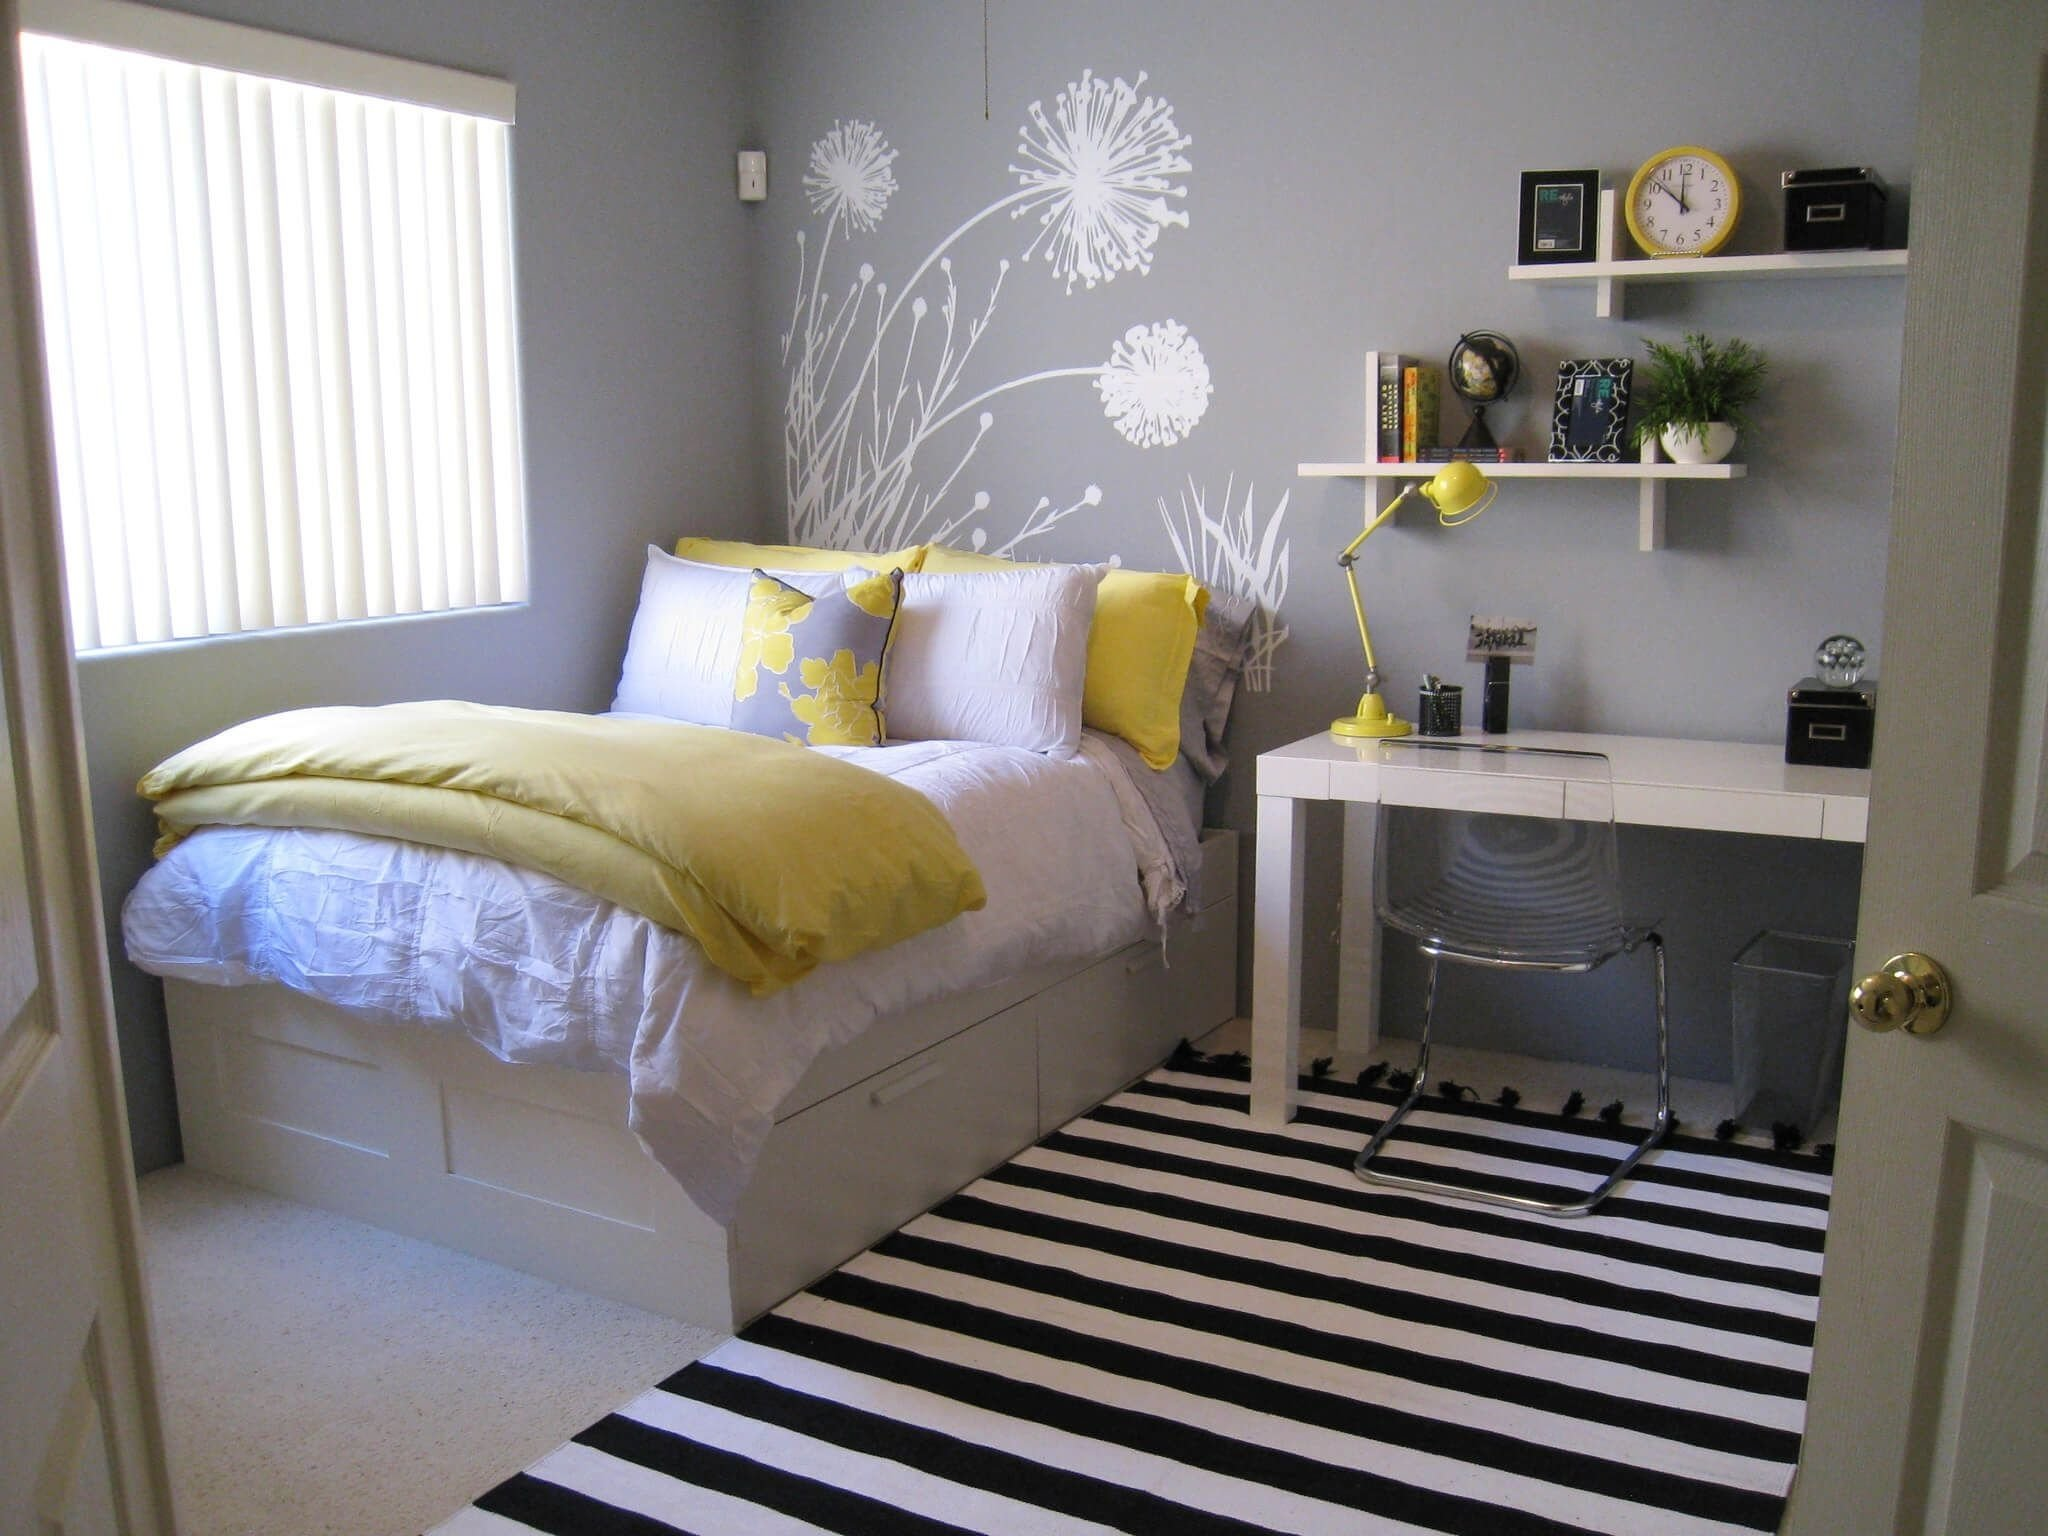 10 Pretty Room Decor Ideas For Small Rooms 45 inspiring small bedrooms pinteres 6 2020